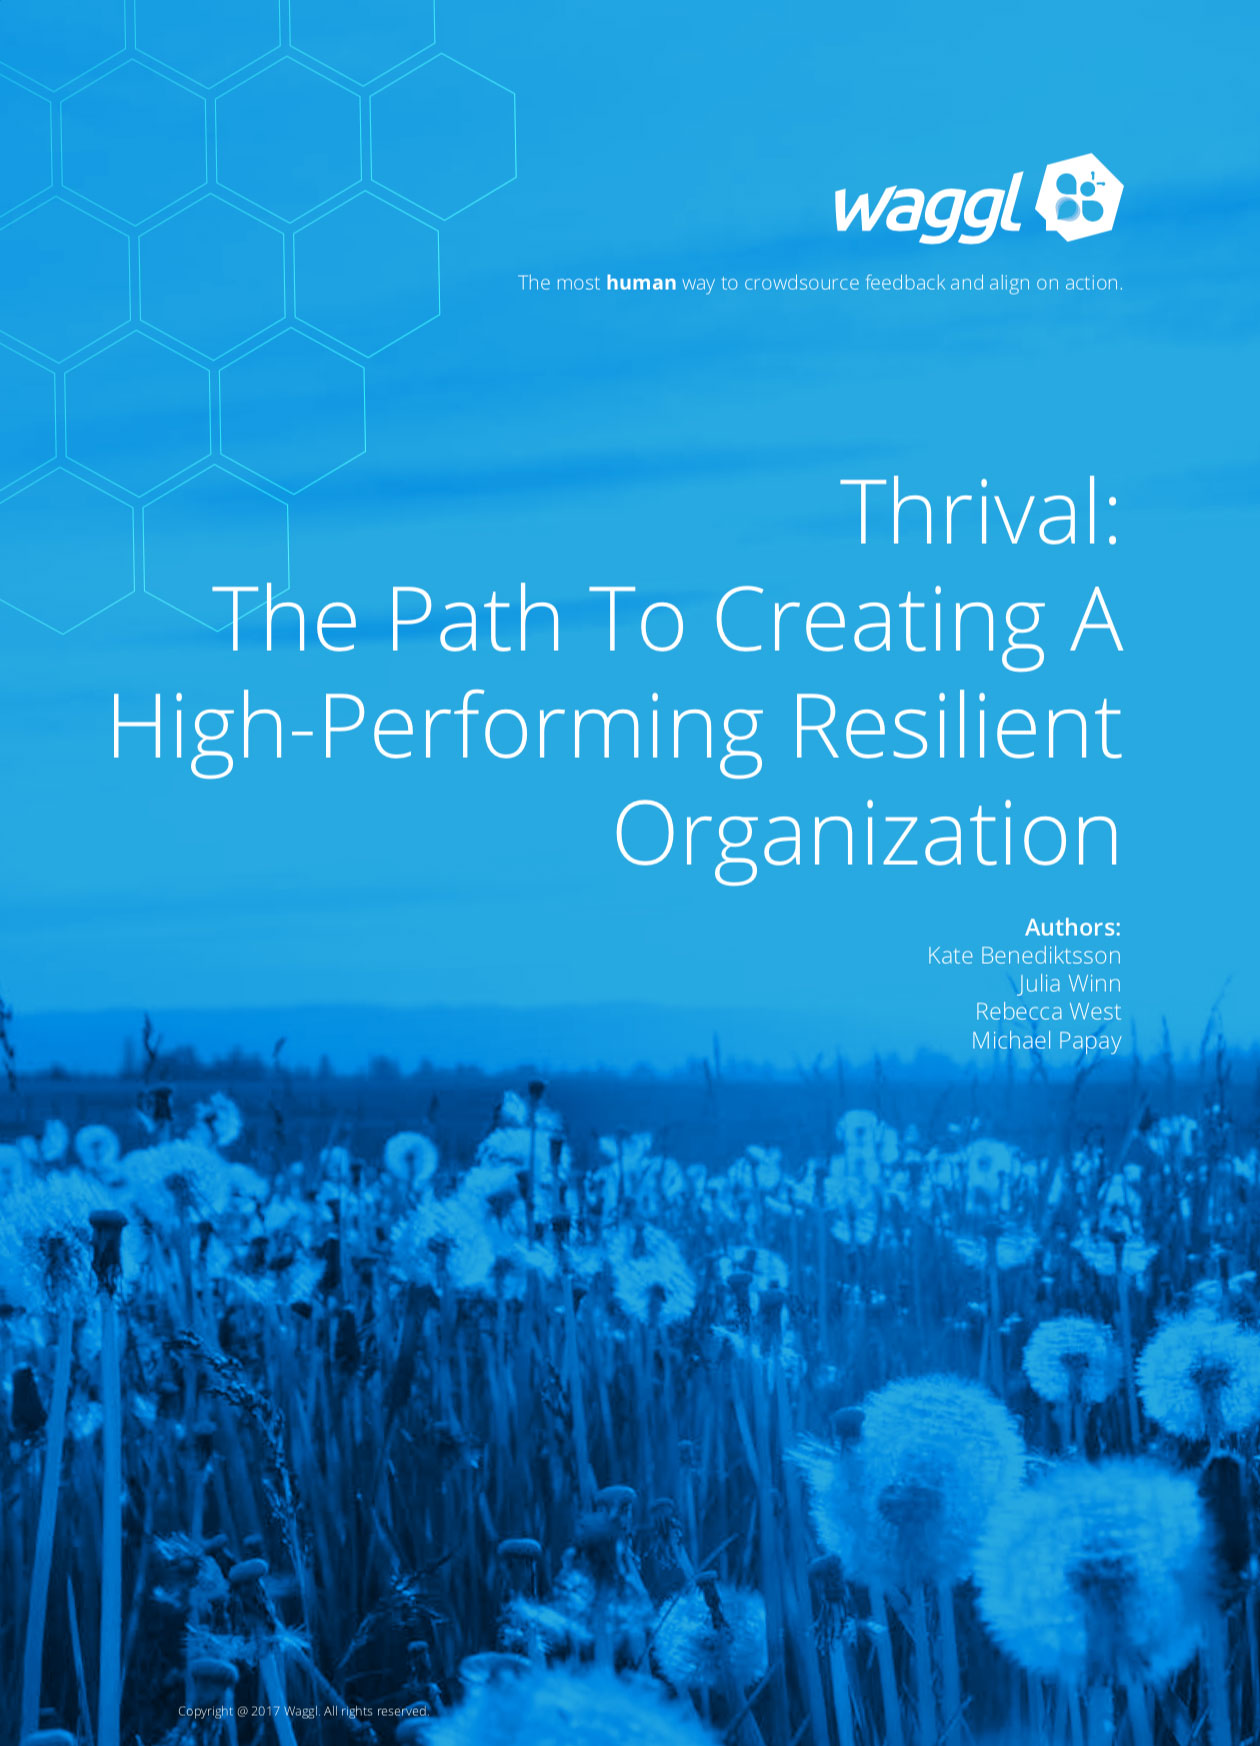 Thrival: The Path to Creating a High-Performing, Resilient Organization